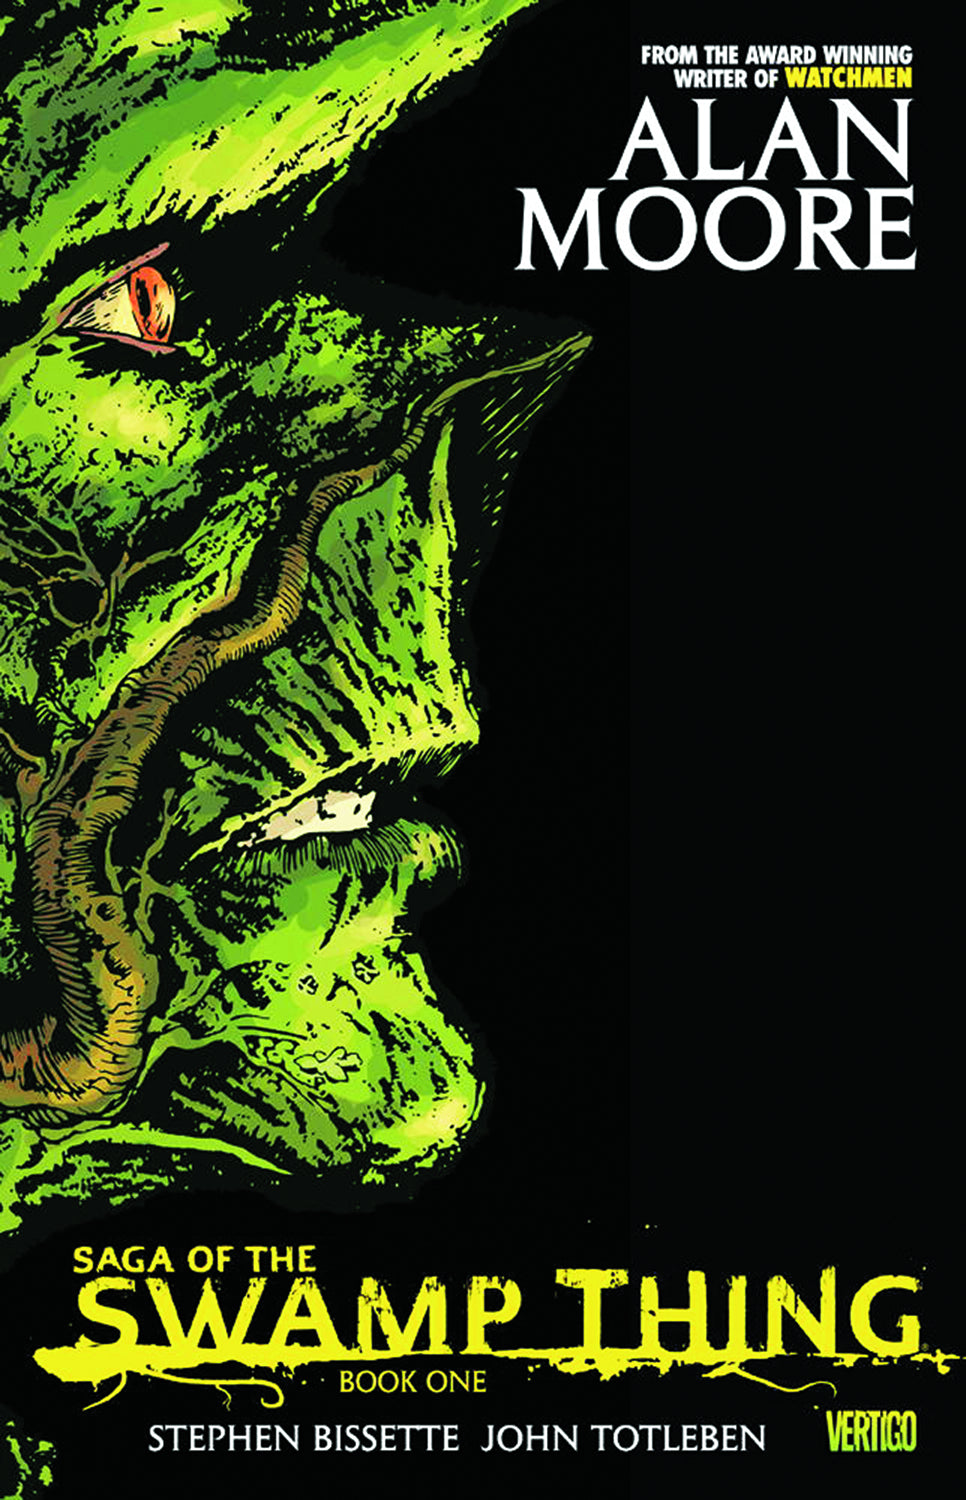 SAGA OF THE SWAMP THING TP BOOK 1